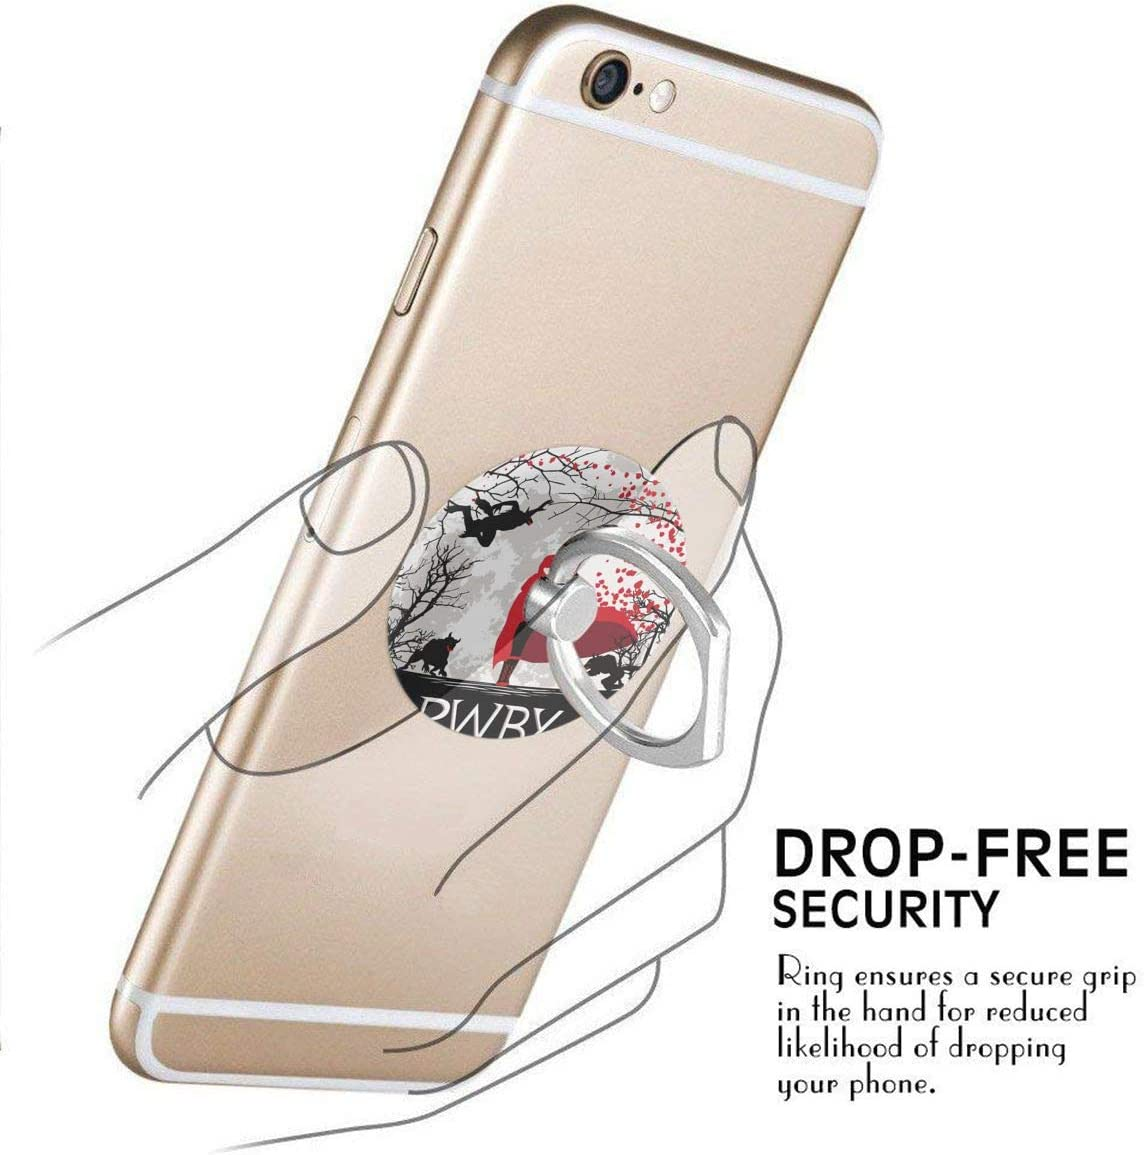 LUCY FOSTER RWBY 360 Degree Rotating Ring Stand Grip Mounts Phone Holder for Any Smartphones iPhone Or Tablets